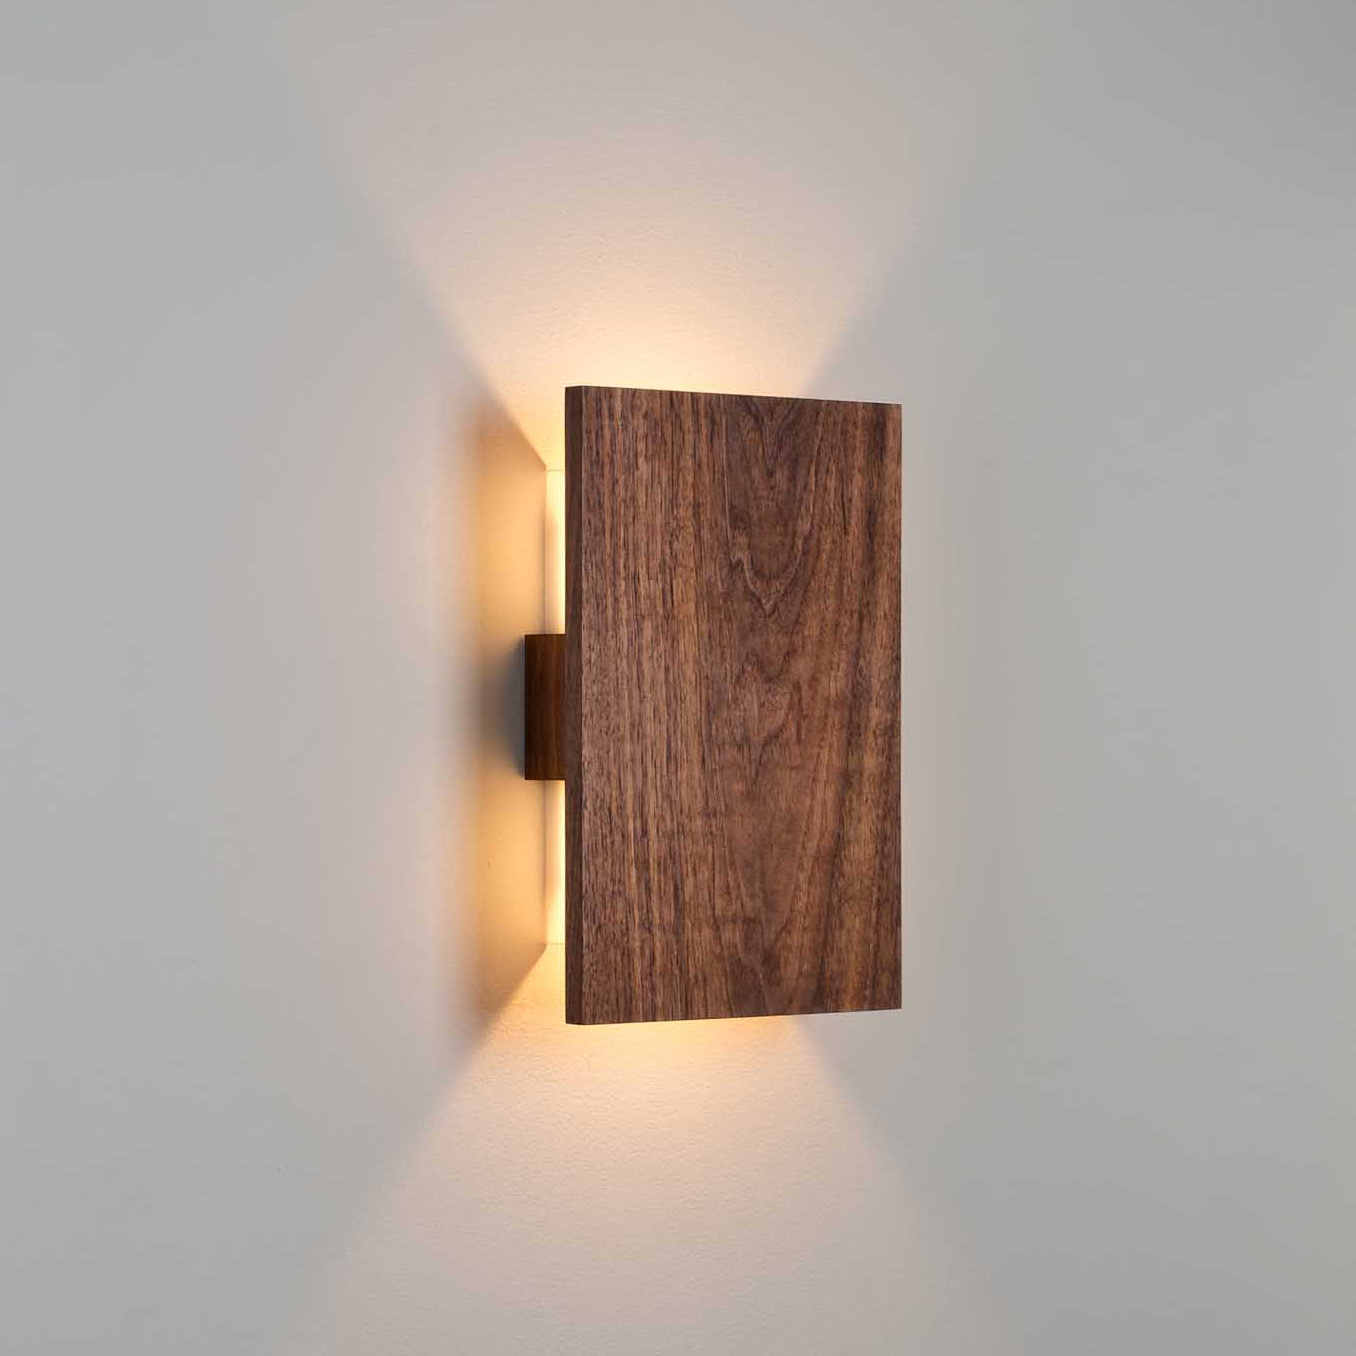 Tersus Wall Light By Cerno 03 136 W 27p1